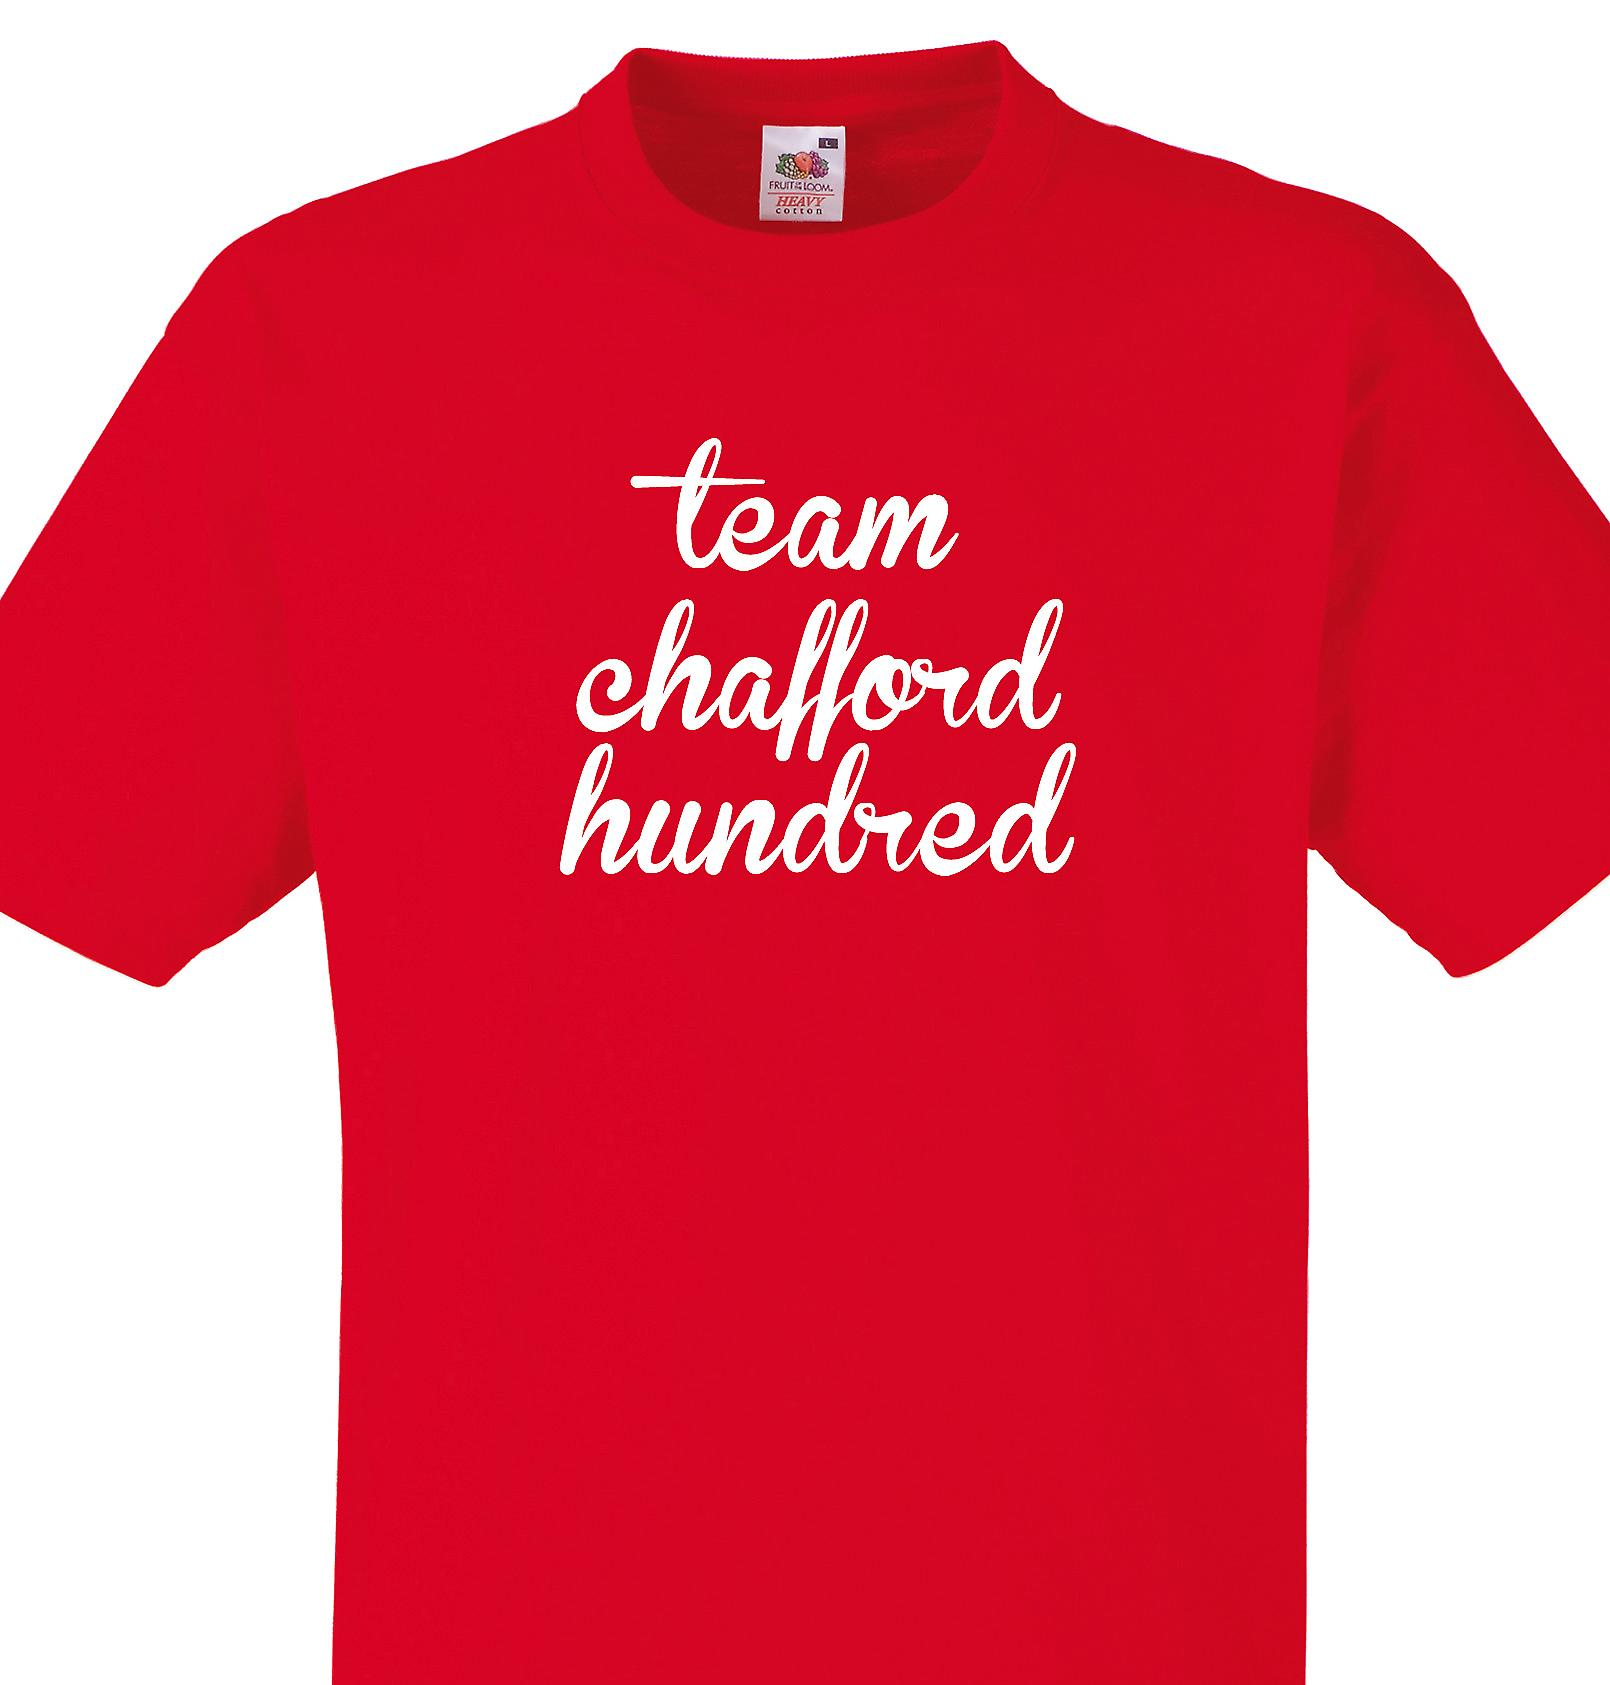 Team Chafford hundred Red T shirt